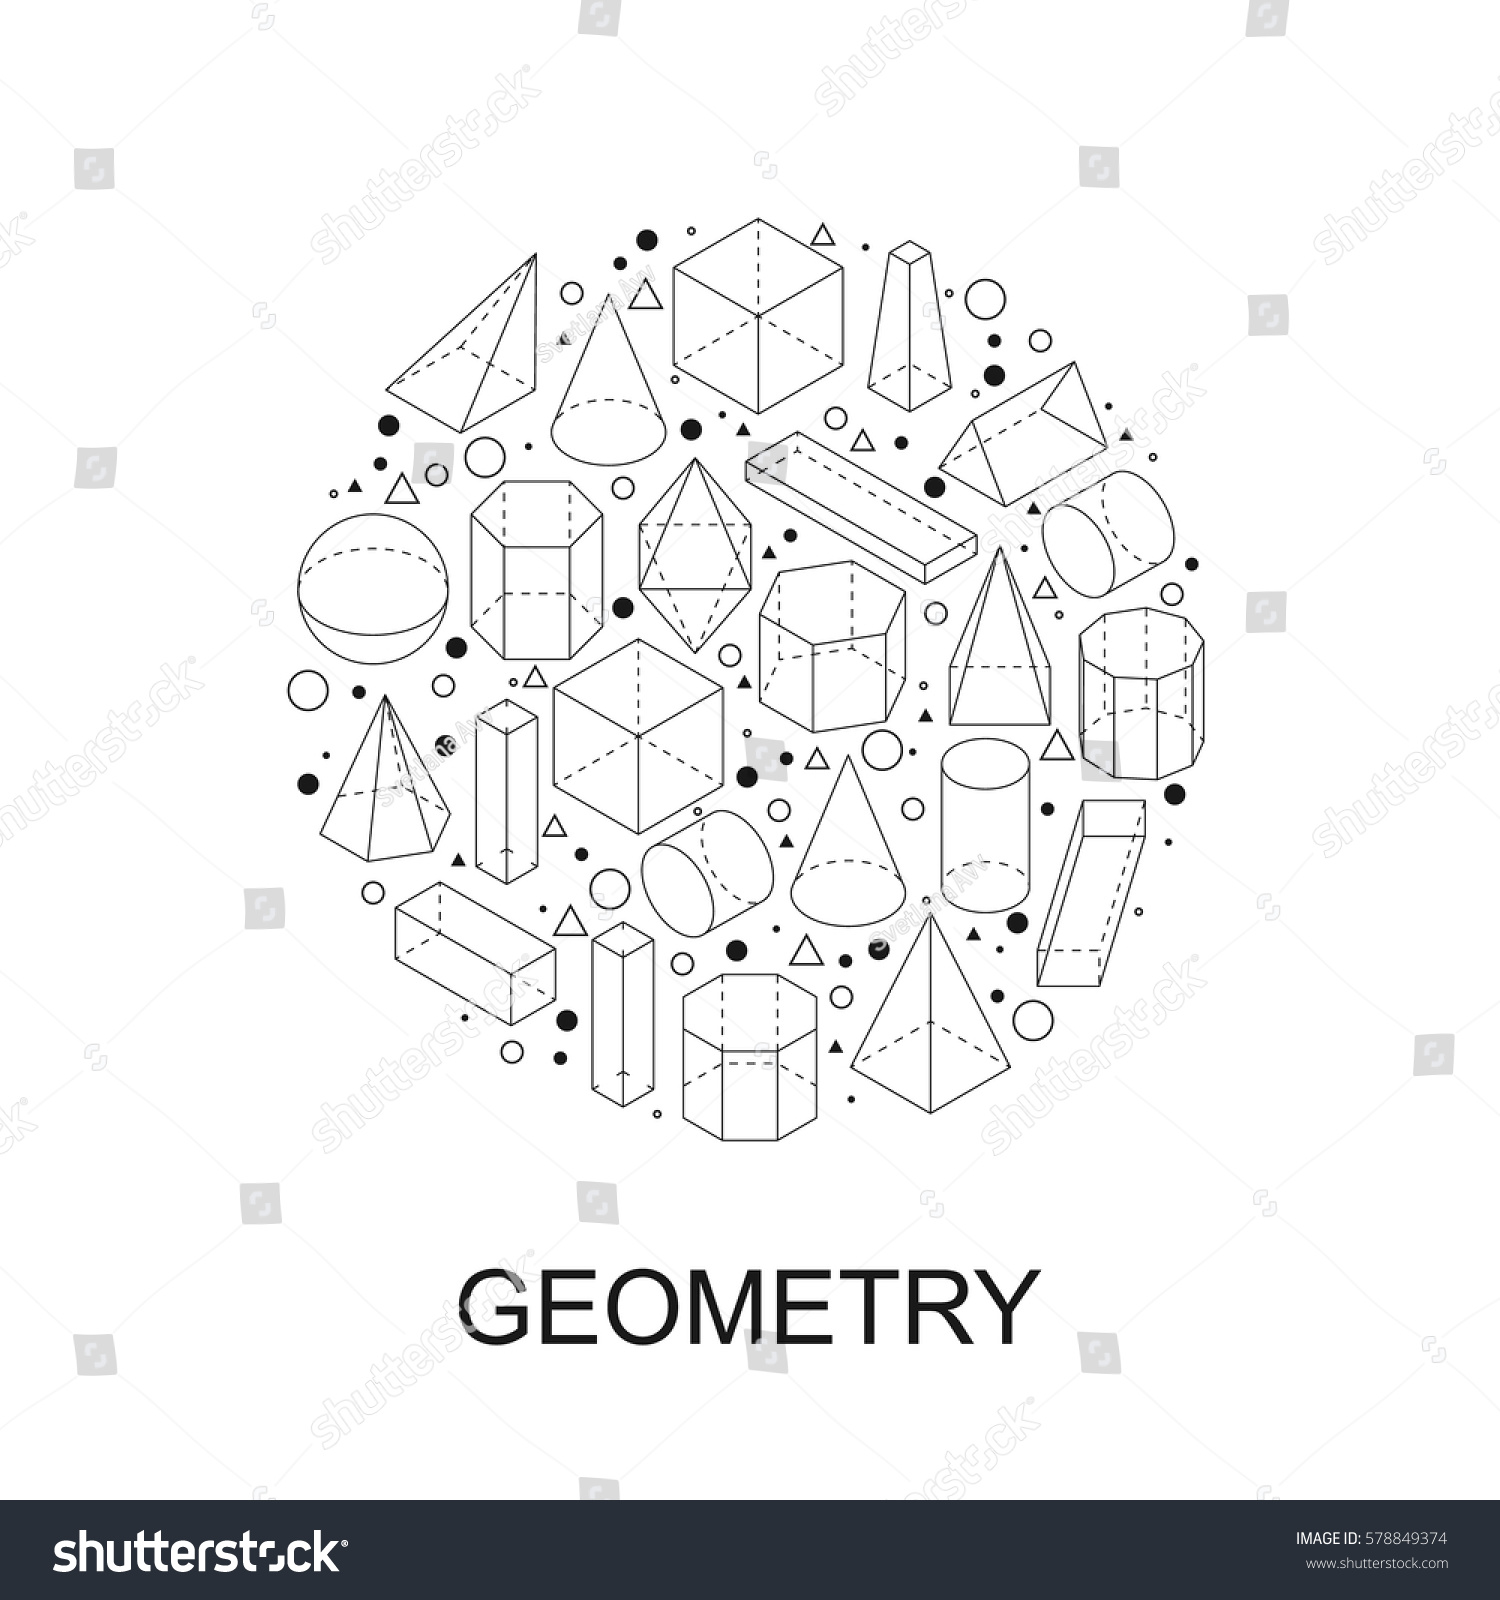 Geometry shapes round stamp symbol isometric stock vector round stamp symbol isometric outline black obgects linear math icon biocorpaavc